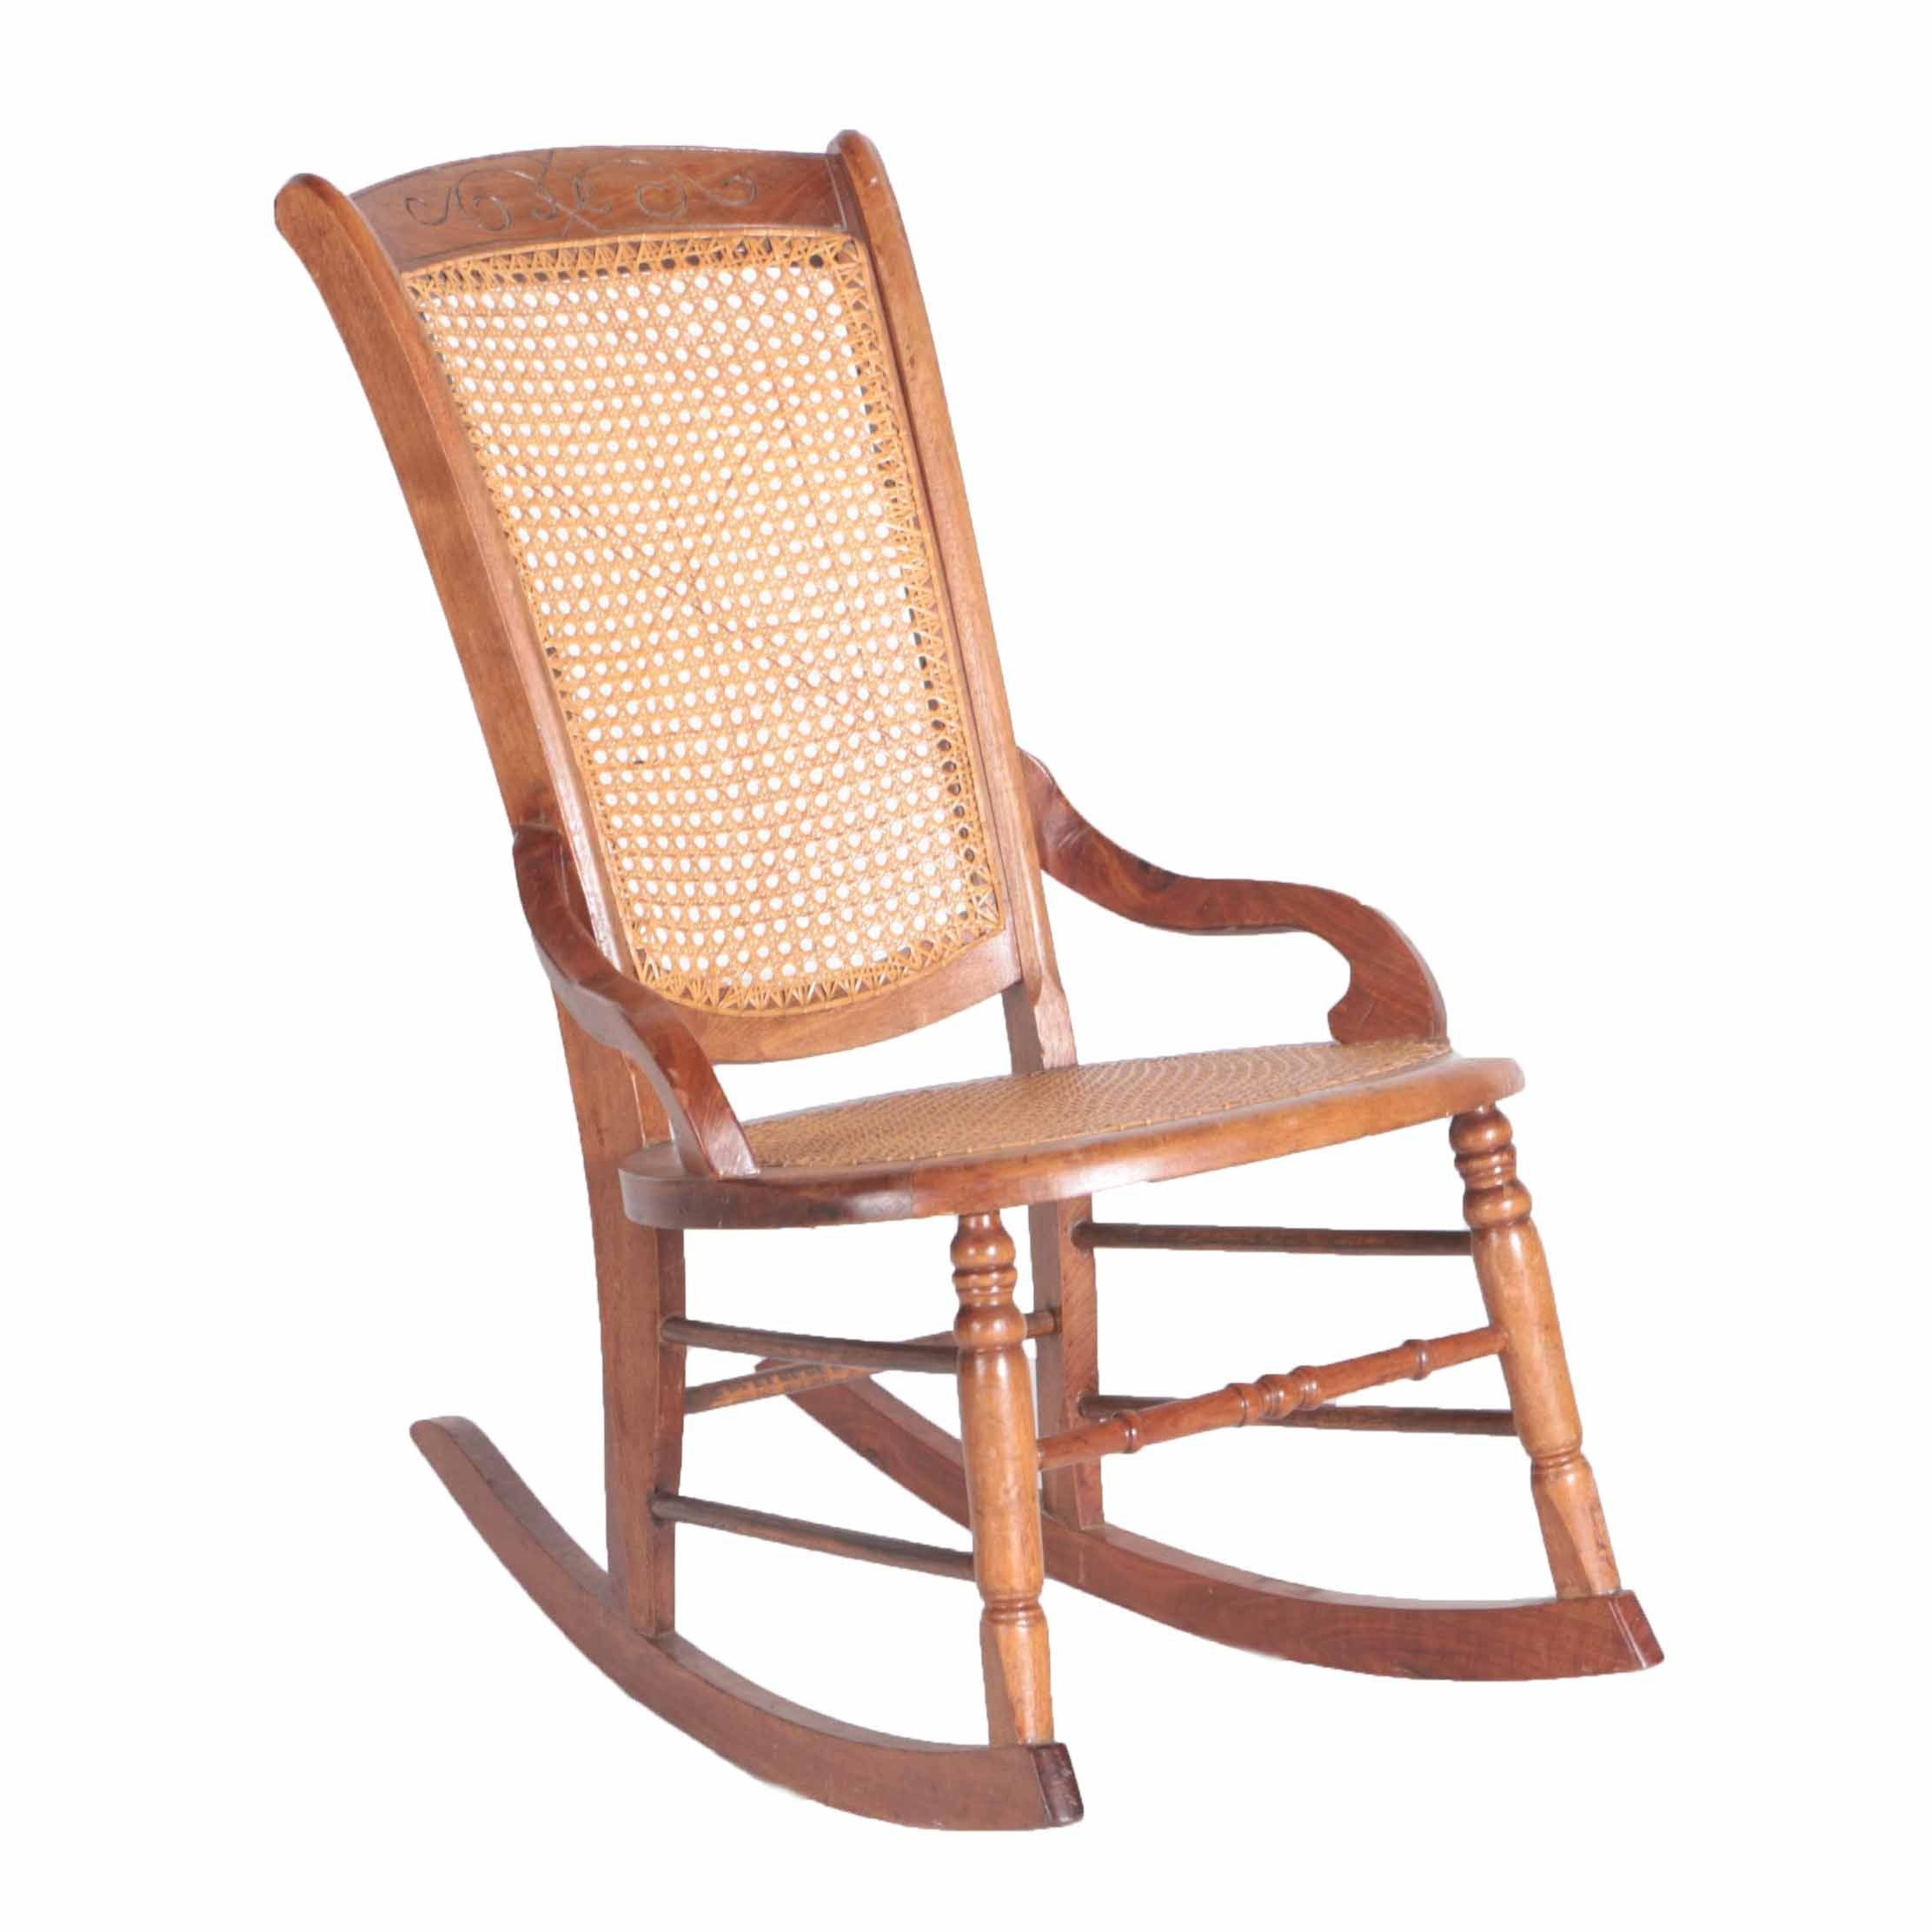 Antique Caned Rocking Chair